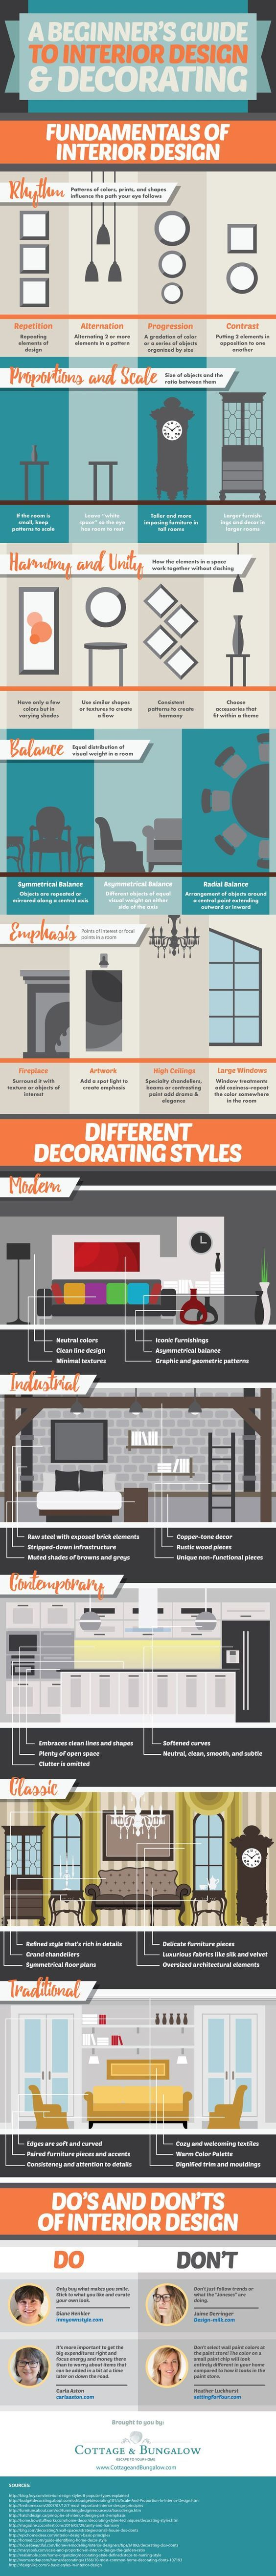 Interior Design Advice: Do's and Don'ts Every Beginner Should Know